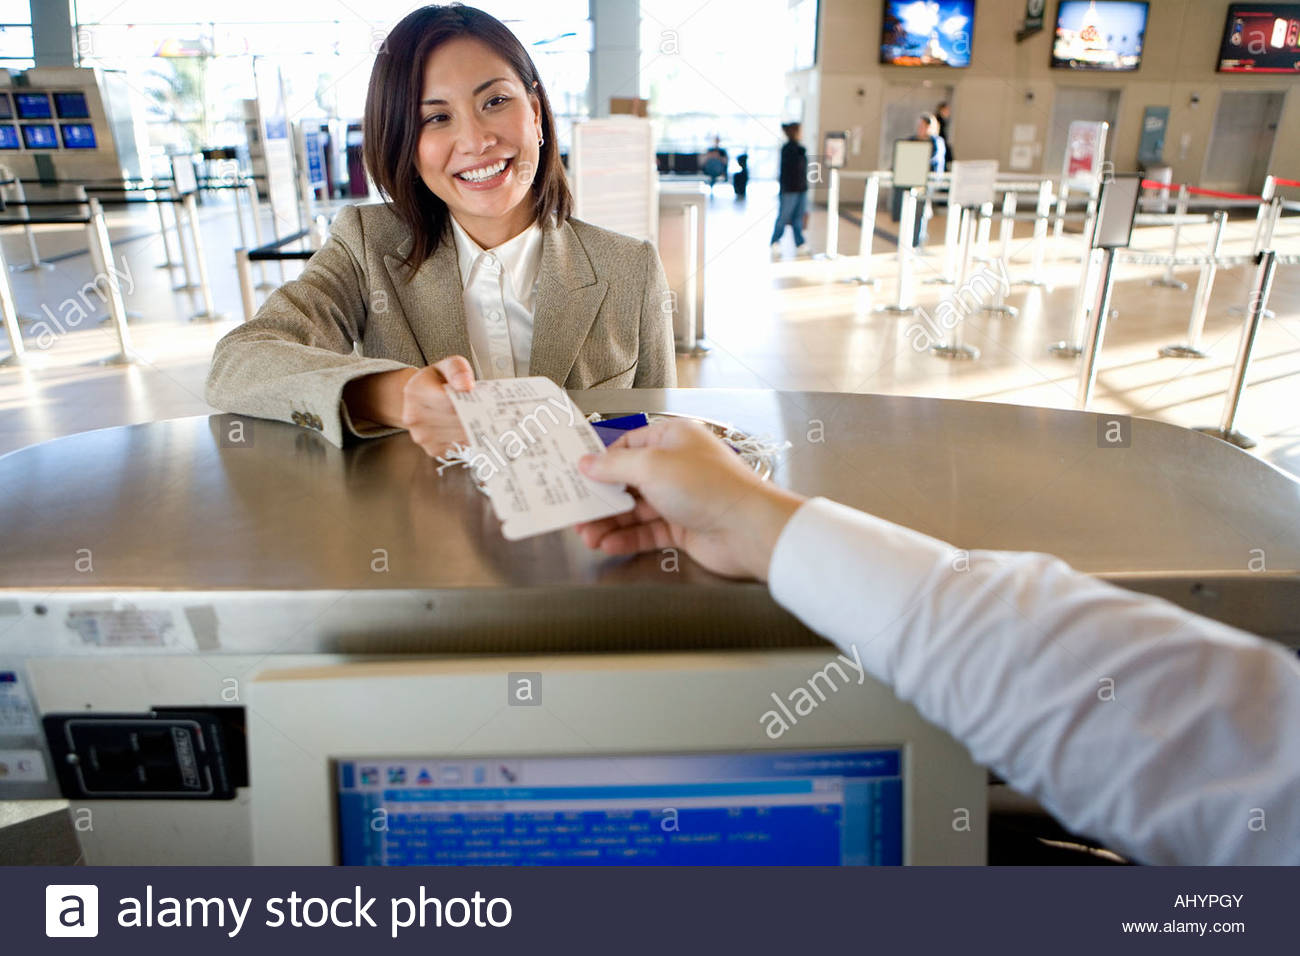 Businesswoman checking in at airport, receiving boarding pass from check-in attendant, smiling, portrait, behind - Stock Image